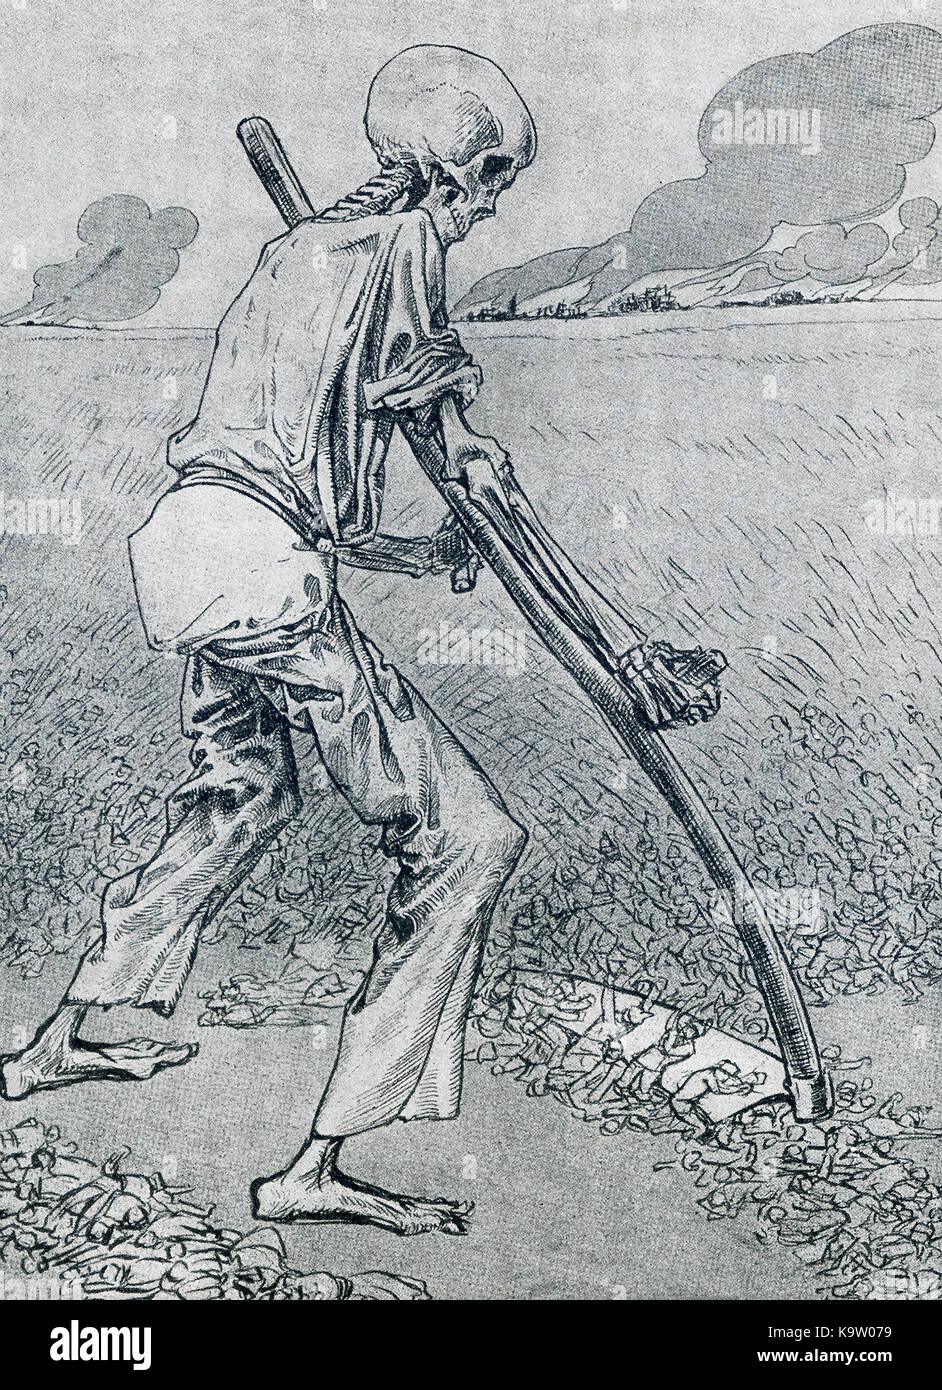 This illustration, a caricature, dates to 1917. It shows 'Death' with a sickle, mowing down soldiers during - Stock Image